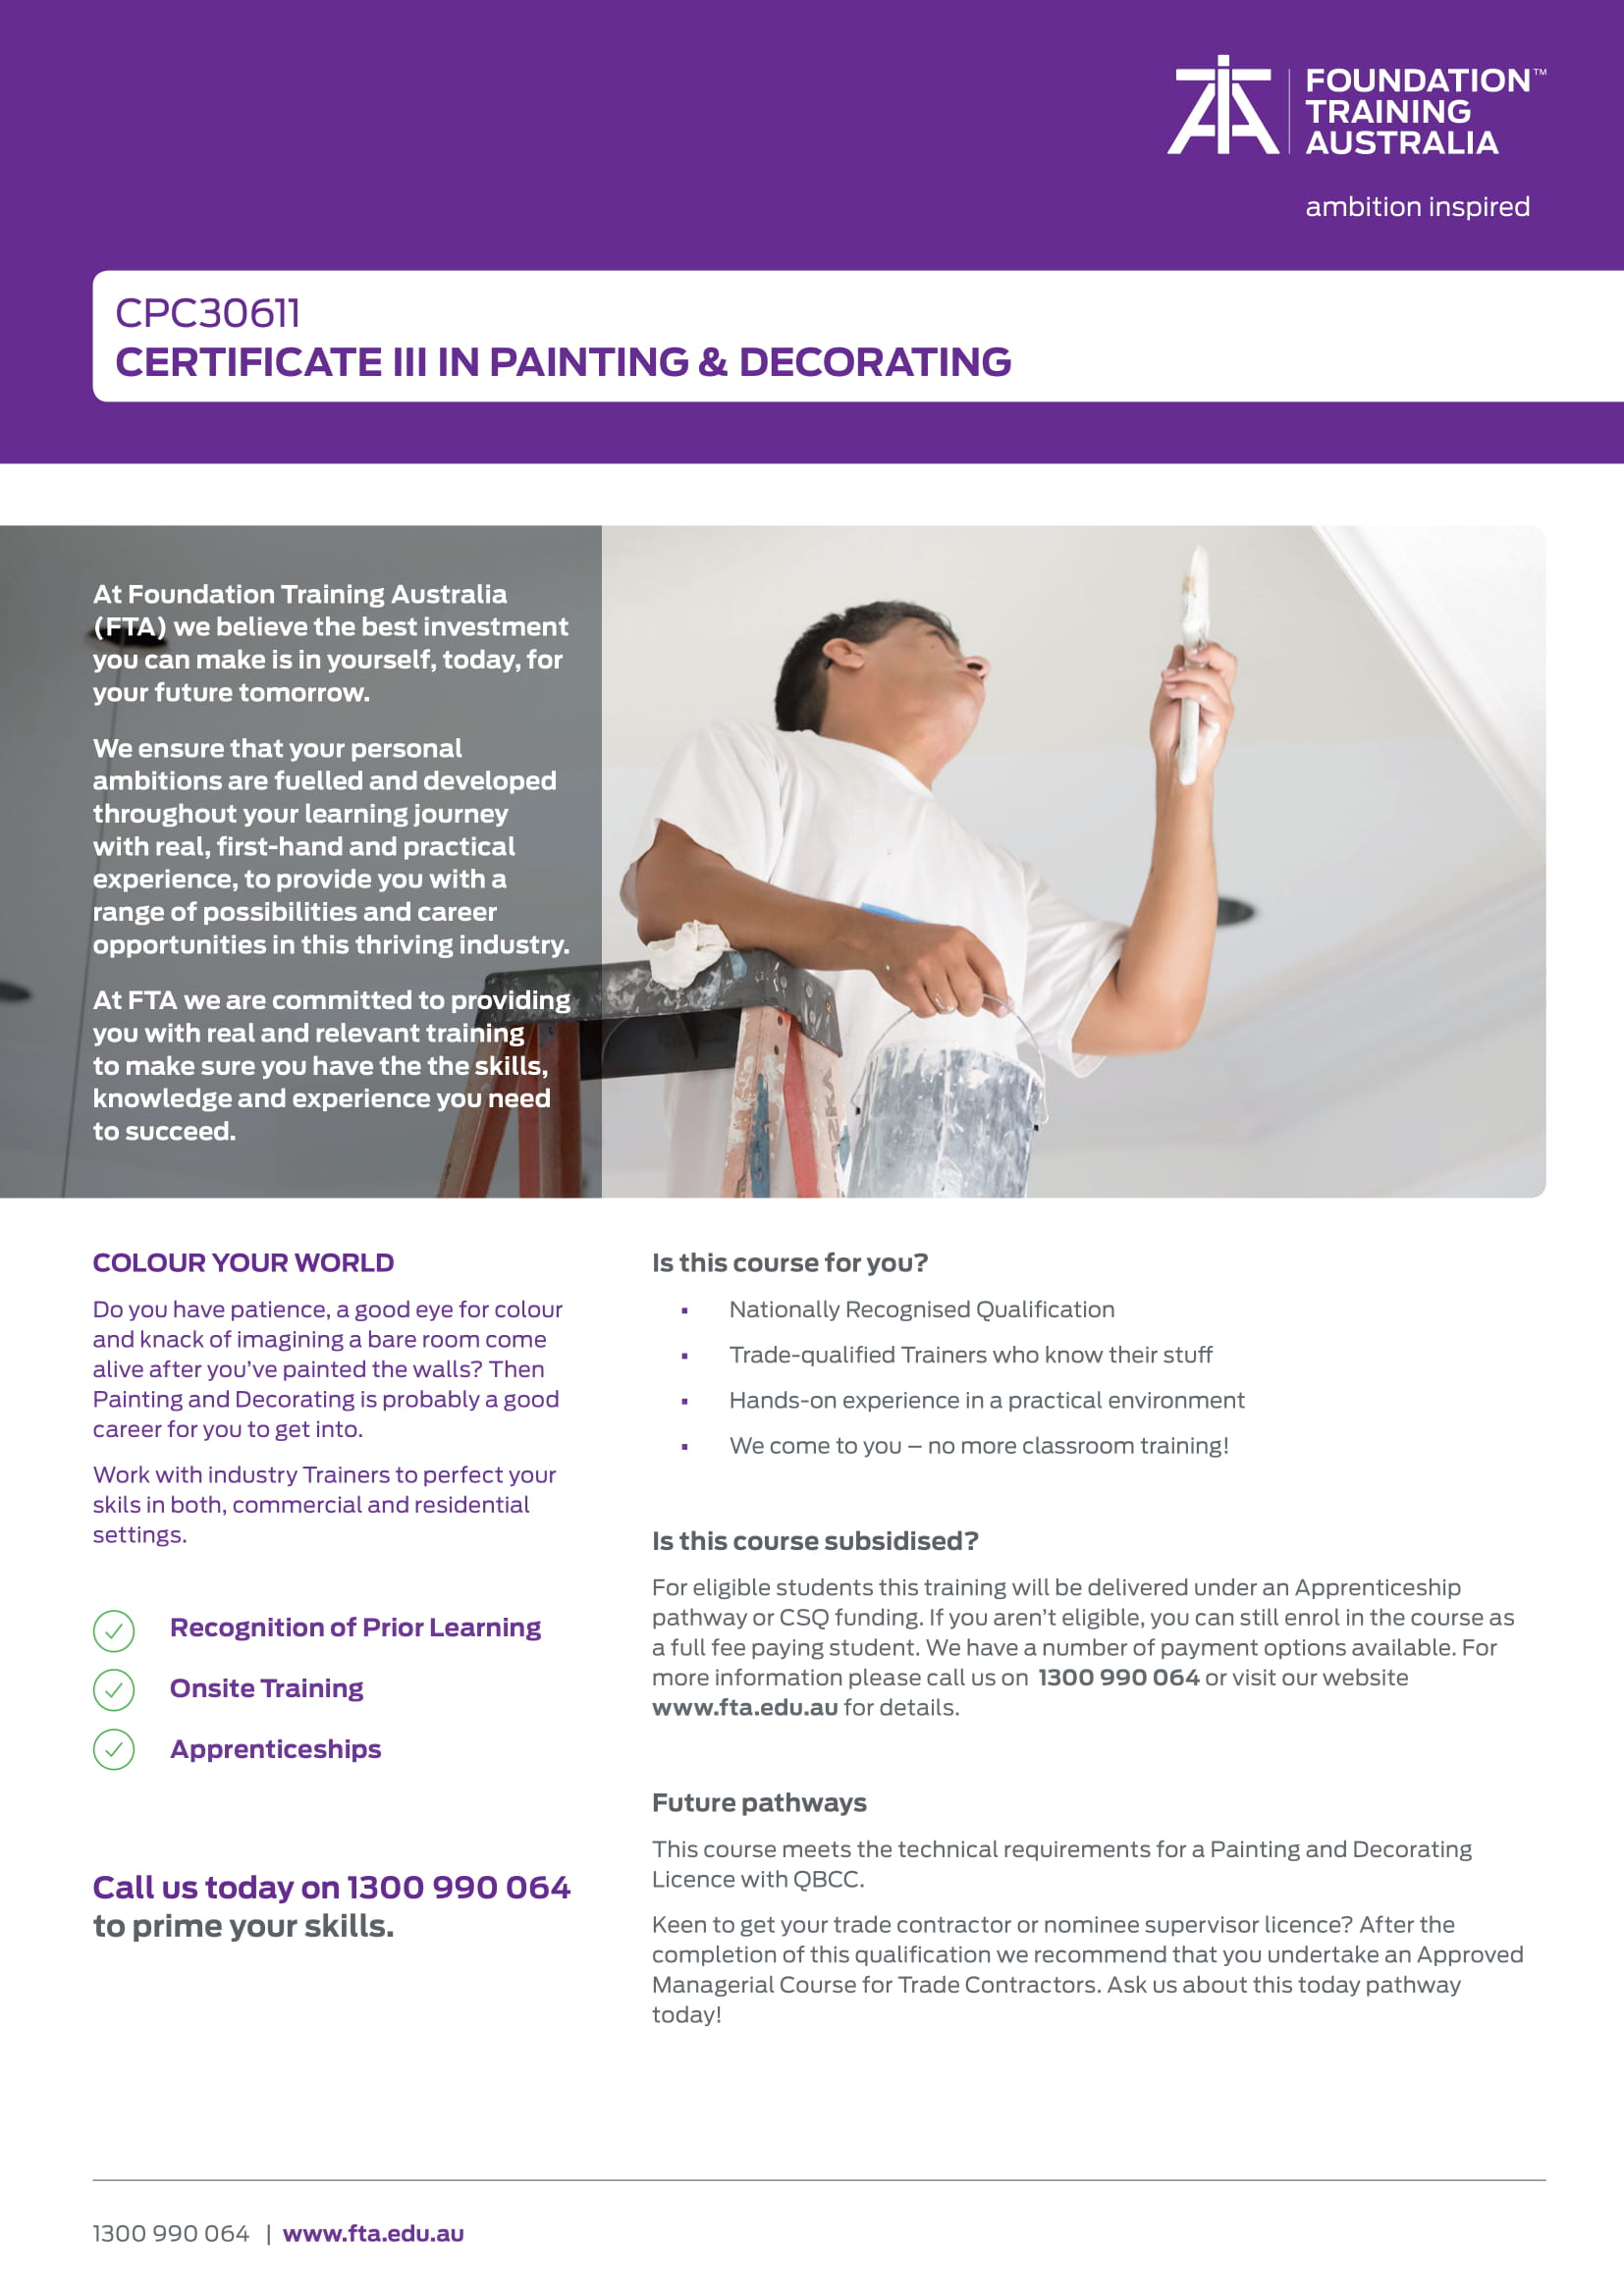 https://www.fta.edu.au/wp-content/uploads/2020/06/TP1.MK_.013-Certificate-III-in-Painting-Decorating-Course-Flyer-CPC30611-V2-DIGITAL-1.jpg